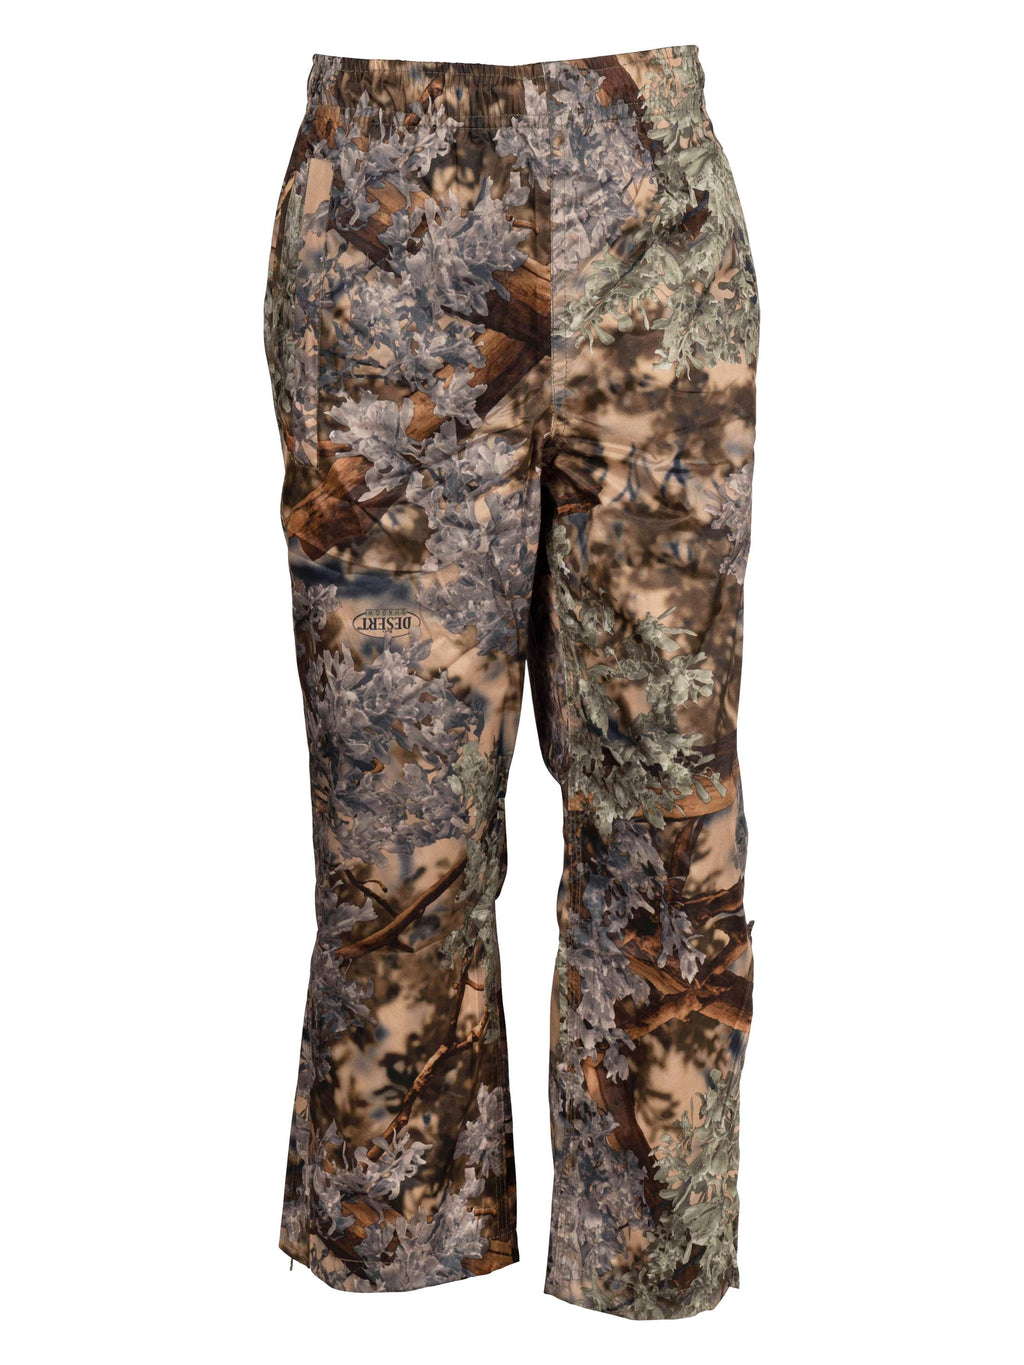 Kids Climatex Rainwear Pant in Desert Shadow | King's Camo